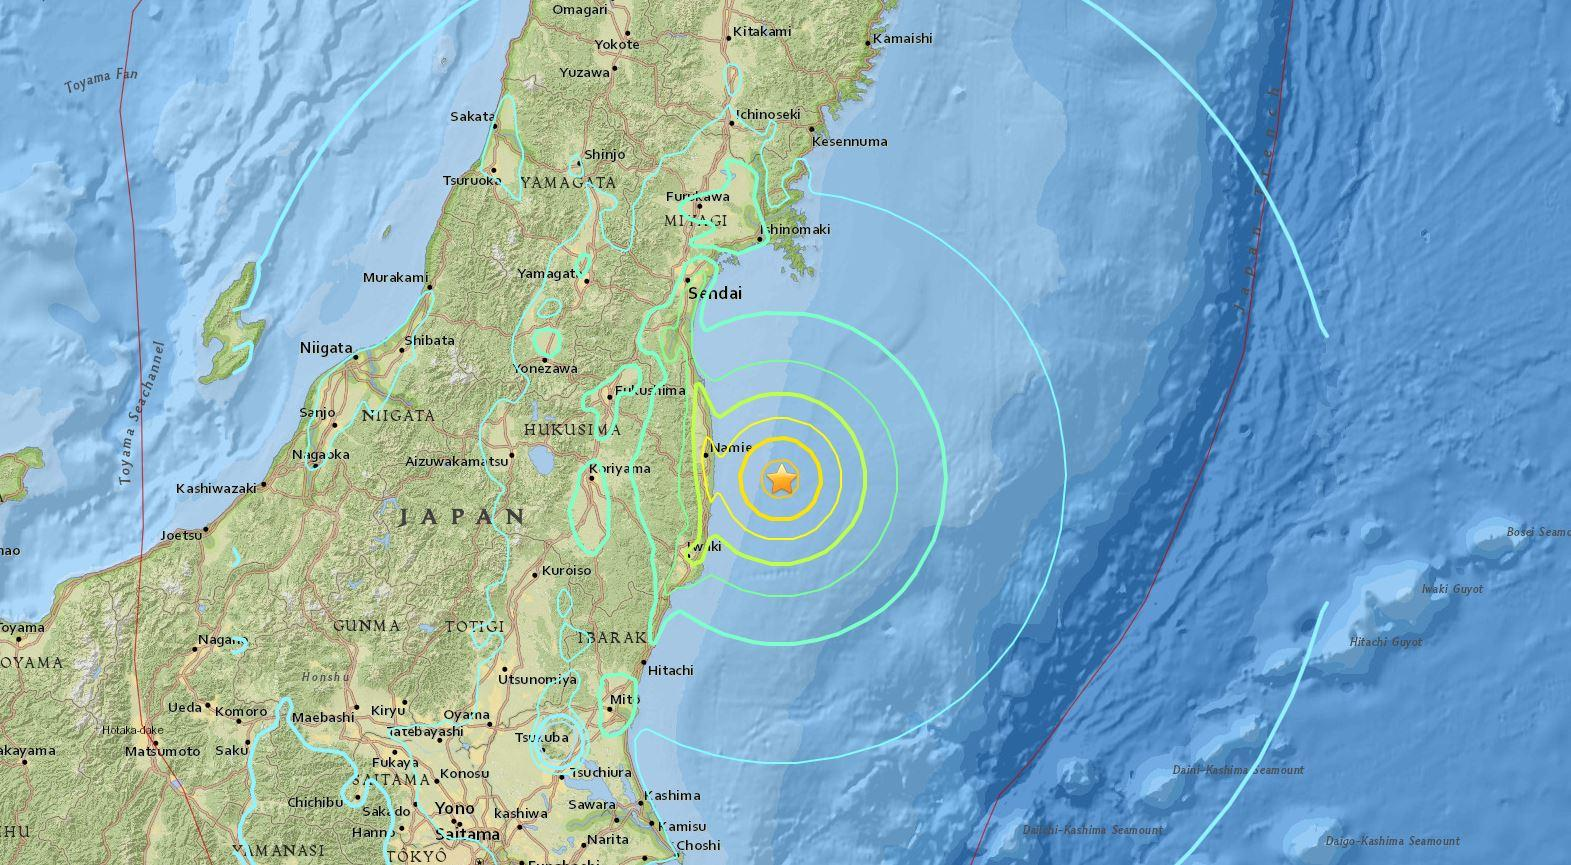 Tsunami warning issued after massive earthquake off